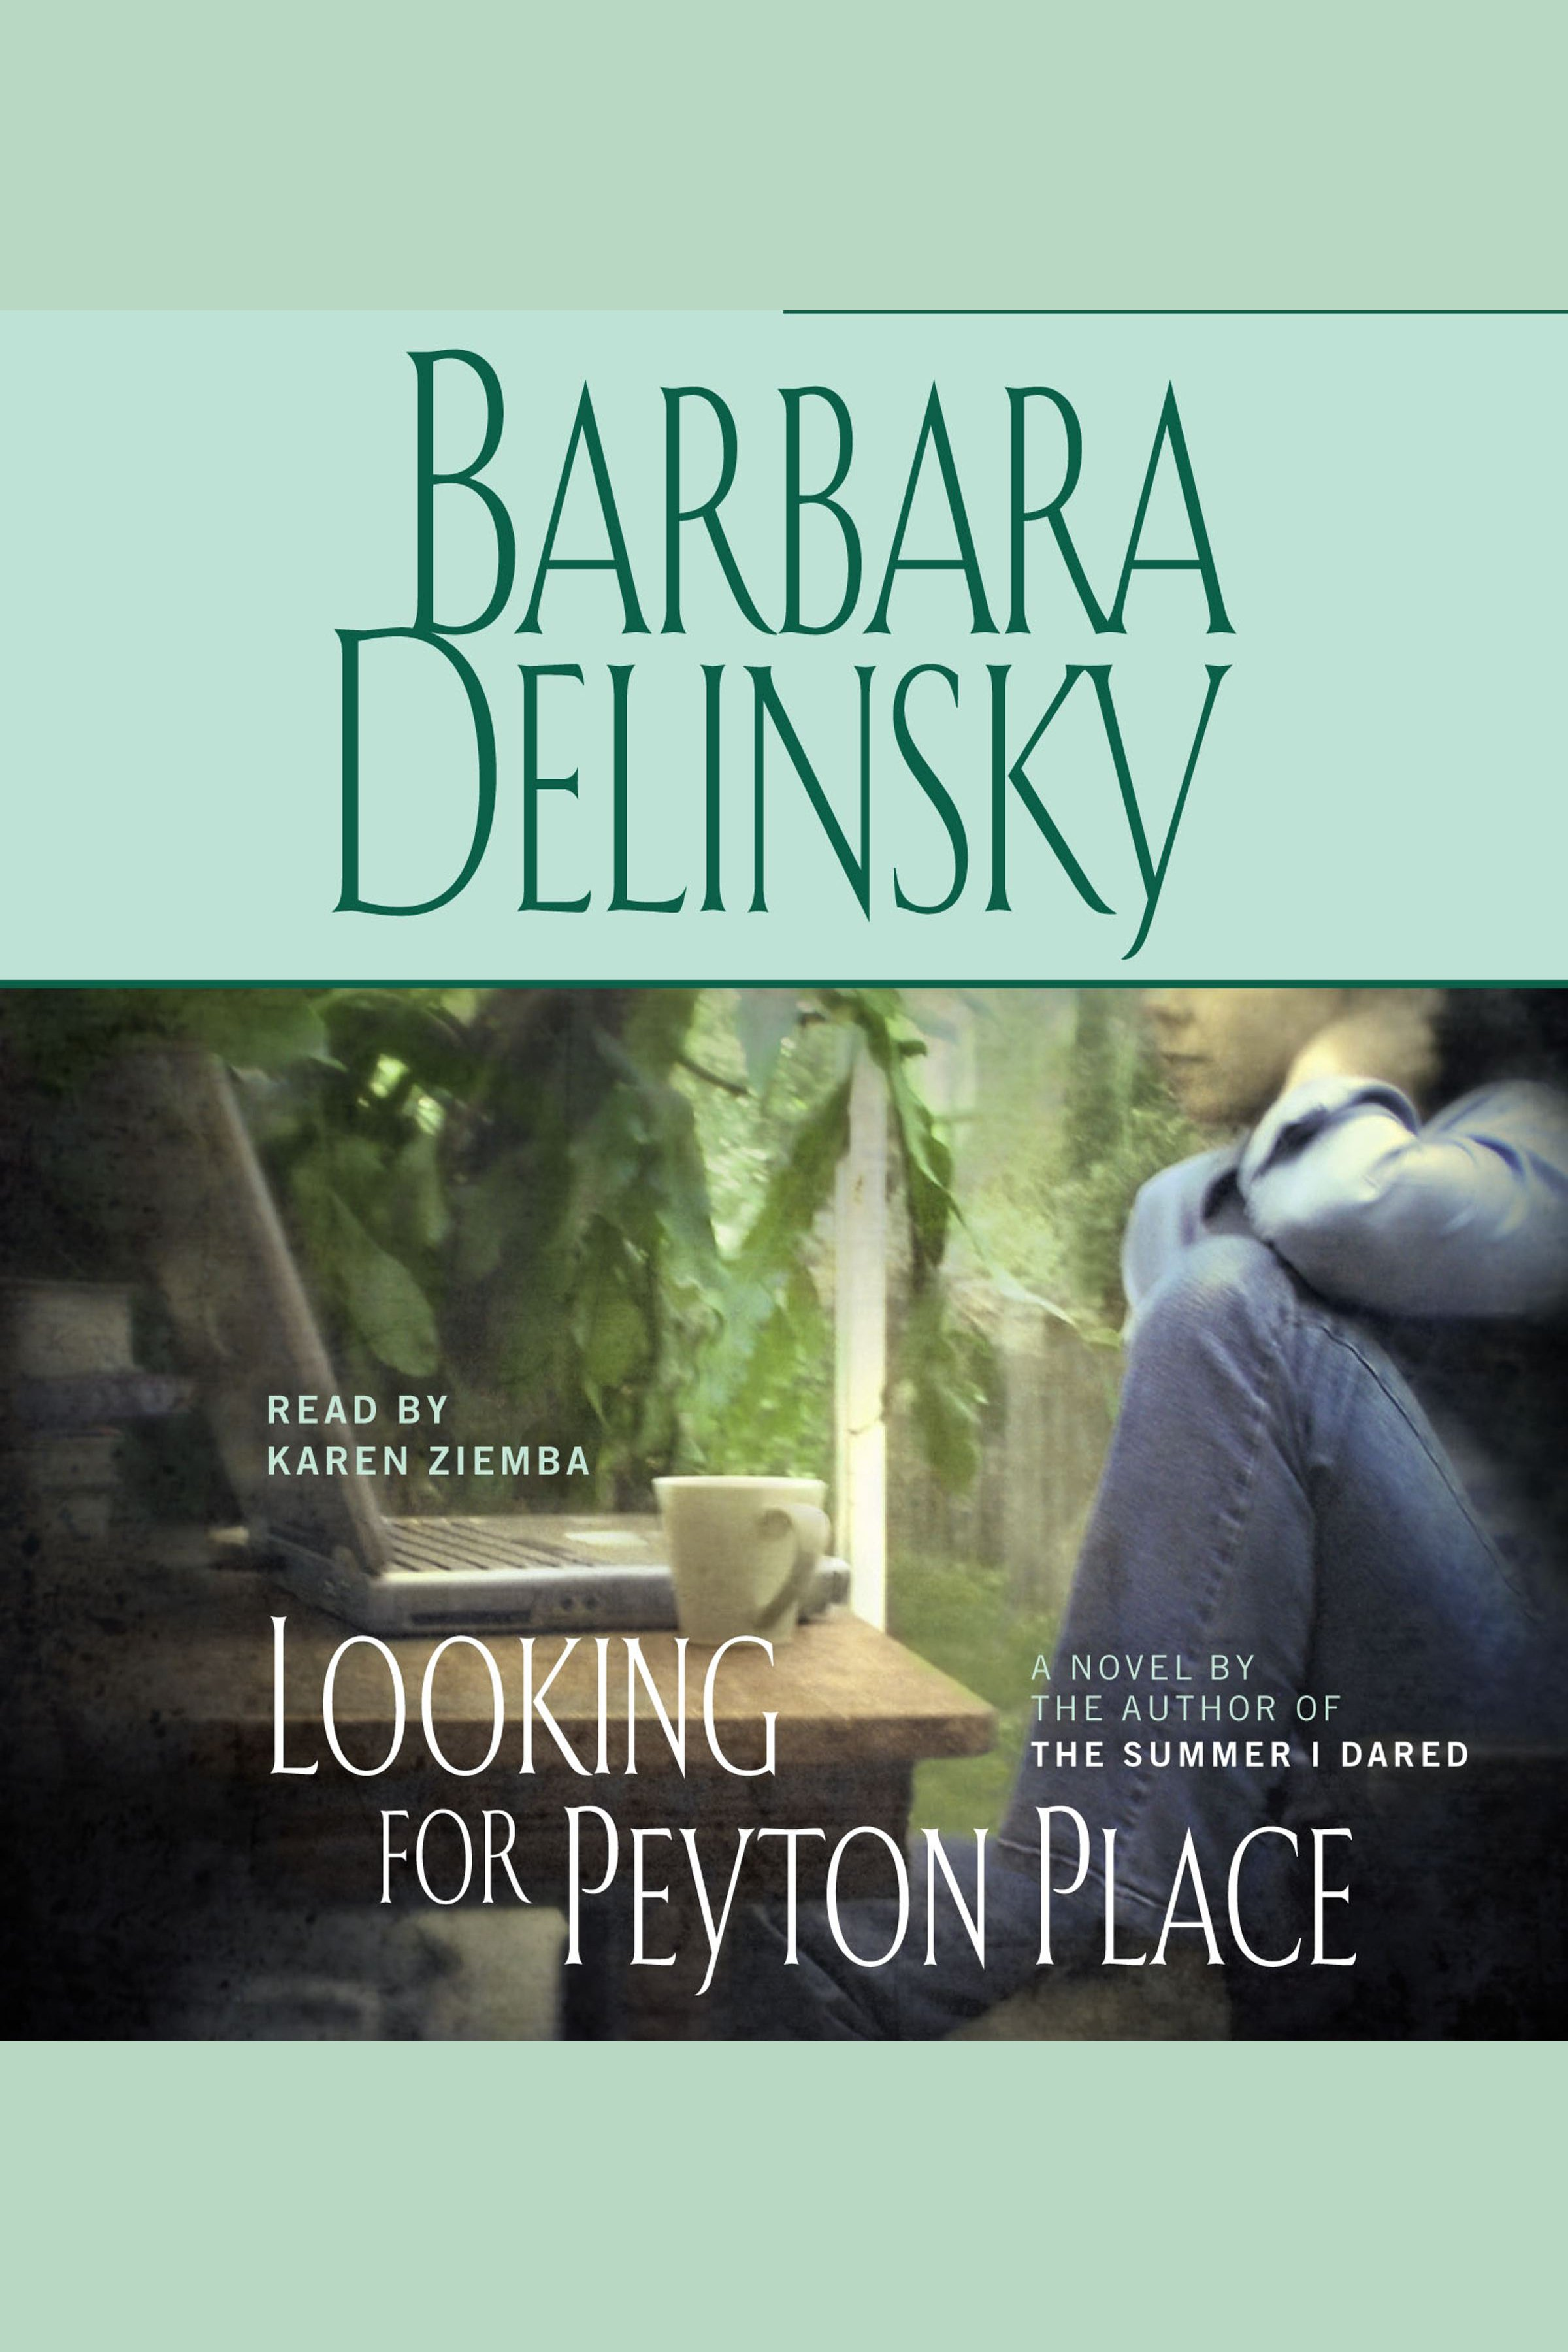 Looking for Peyton Place cover image